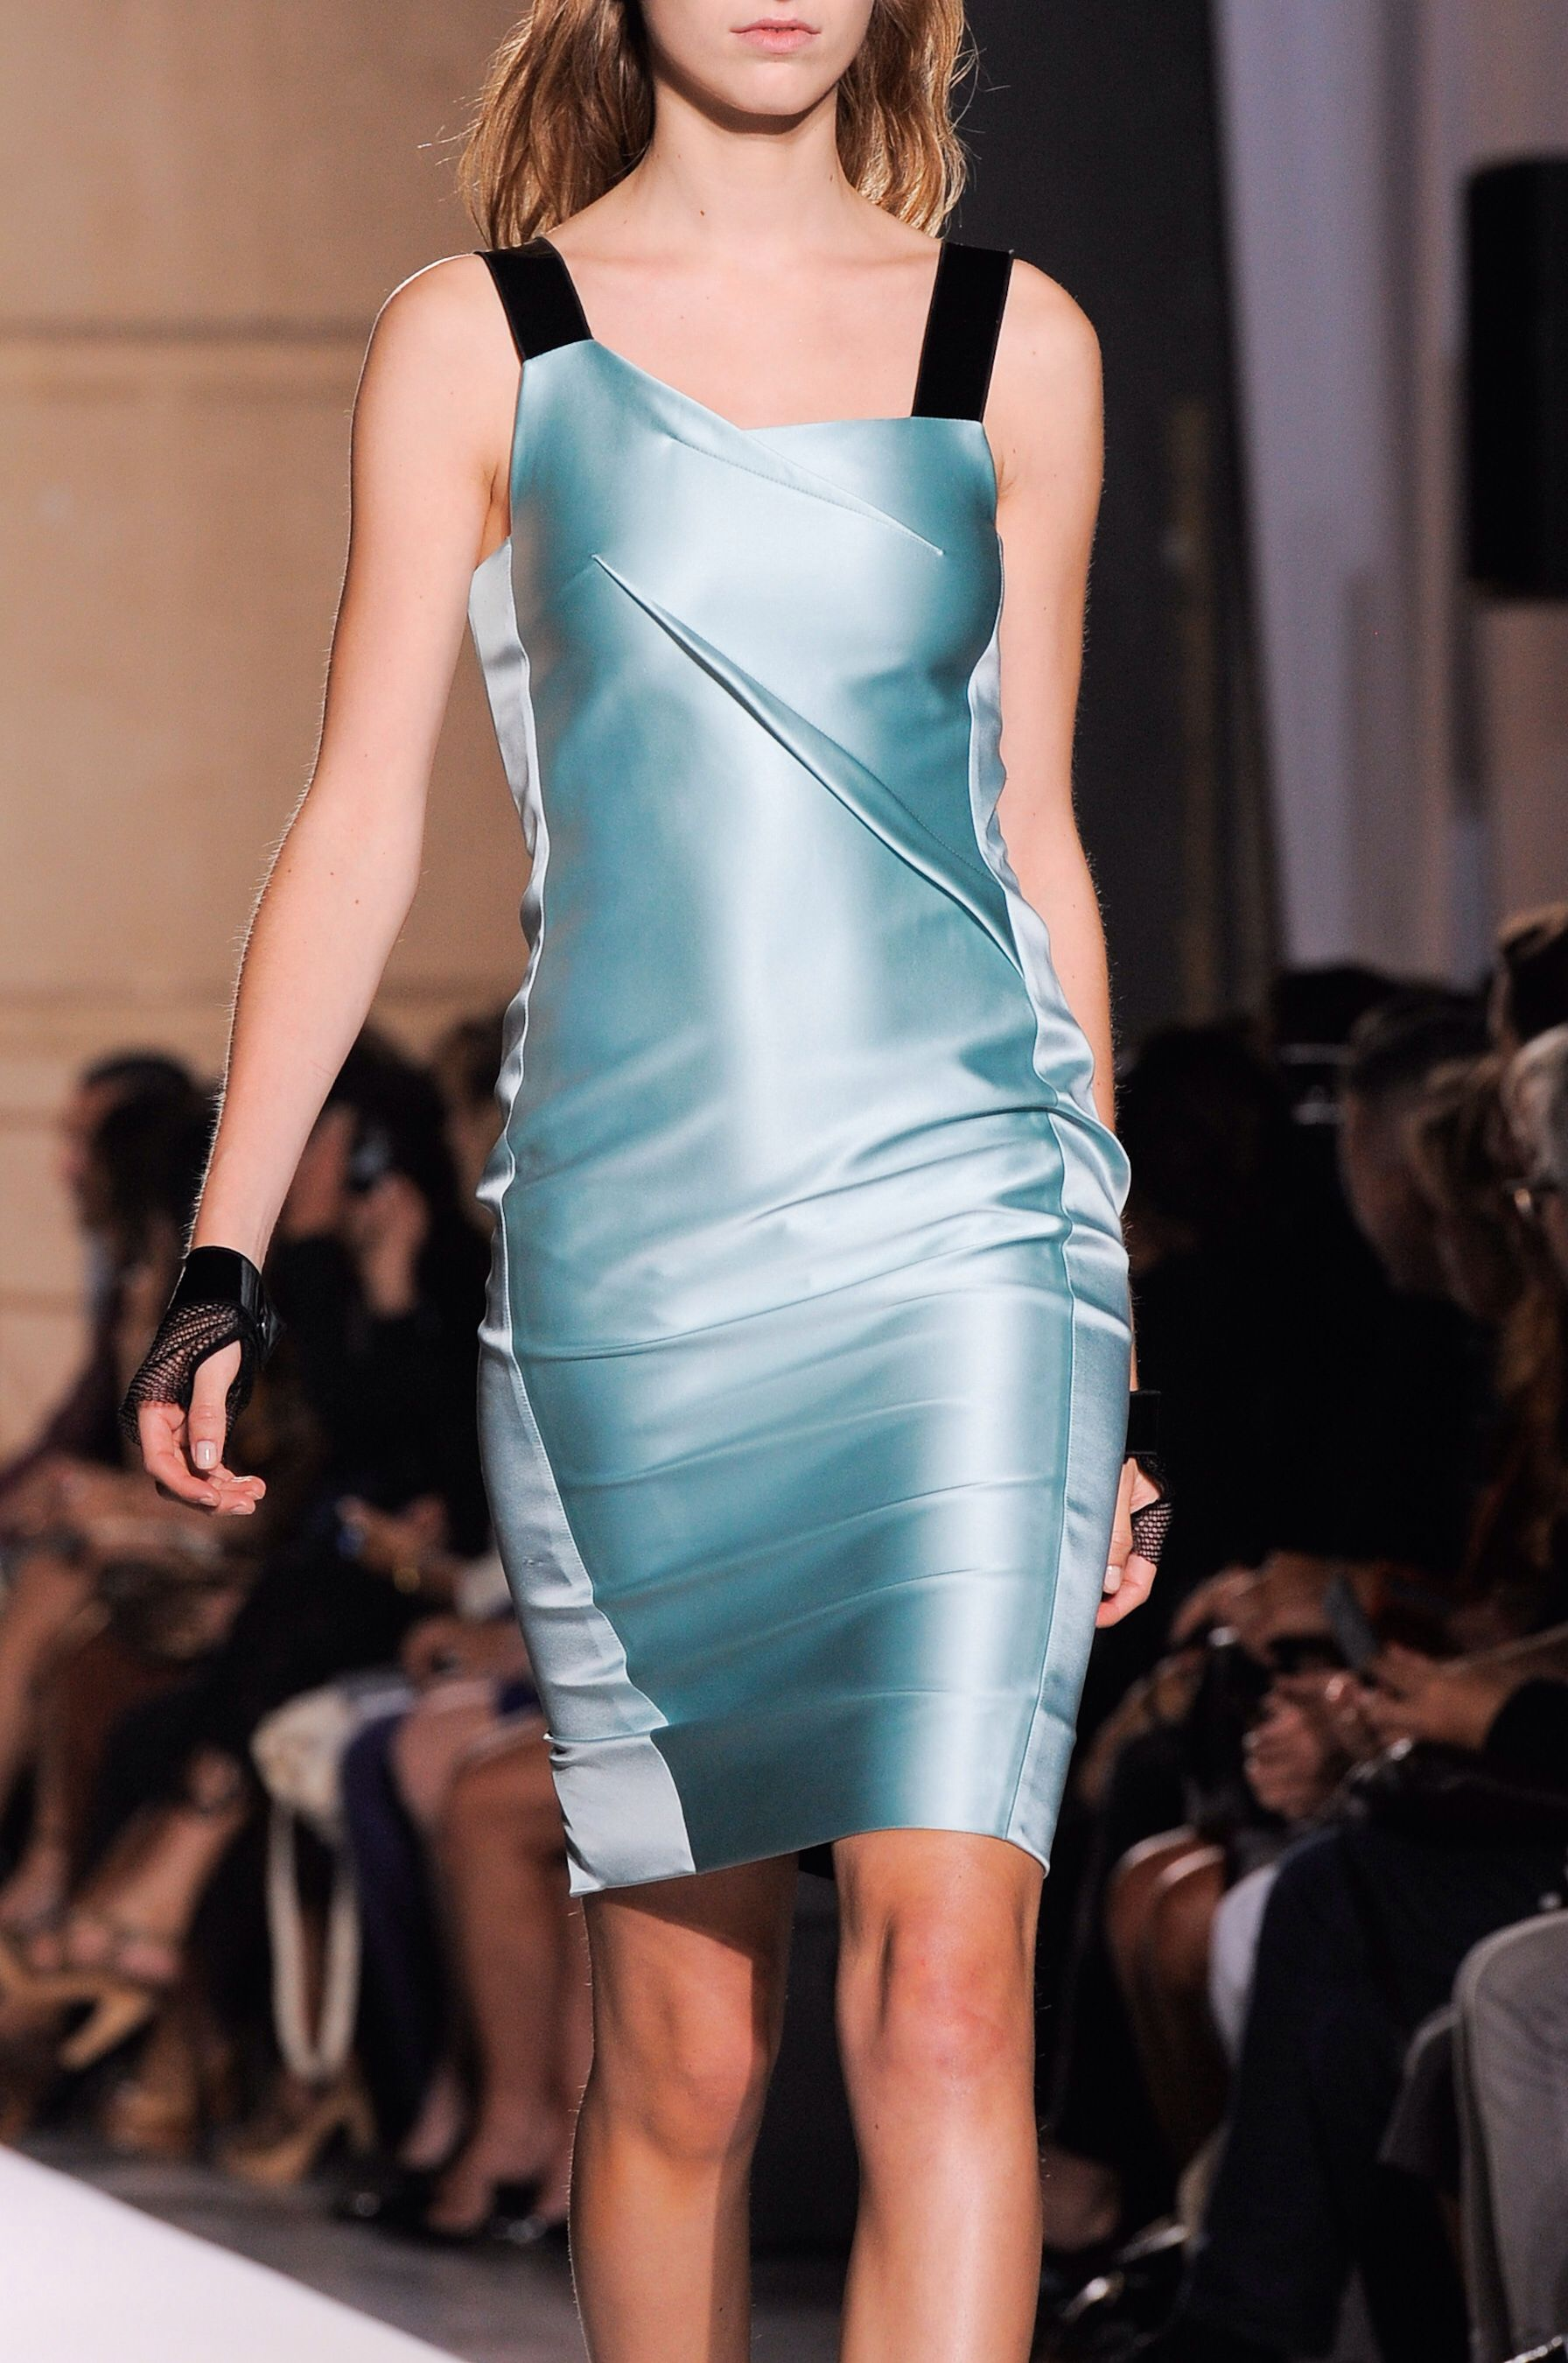 +++ Roland Mouret + Spring / Summer 2014 + PFW + RTW +++ #PatchWorked #PVC #younger #strips #monochrome #draping #RolandMouret @Roland_Mouret #fashion #moda #verano2014 #fashionweek #Paris #pfw #ss2014 #spring2014 #rtw #summer2014 #primavera2014 #runway @ISAZAalejandro